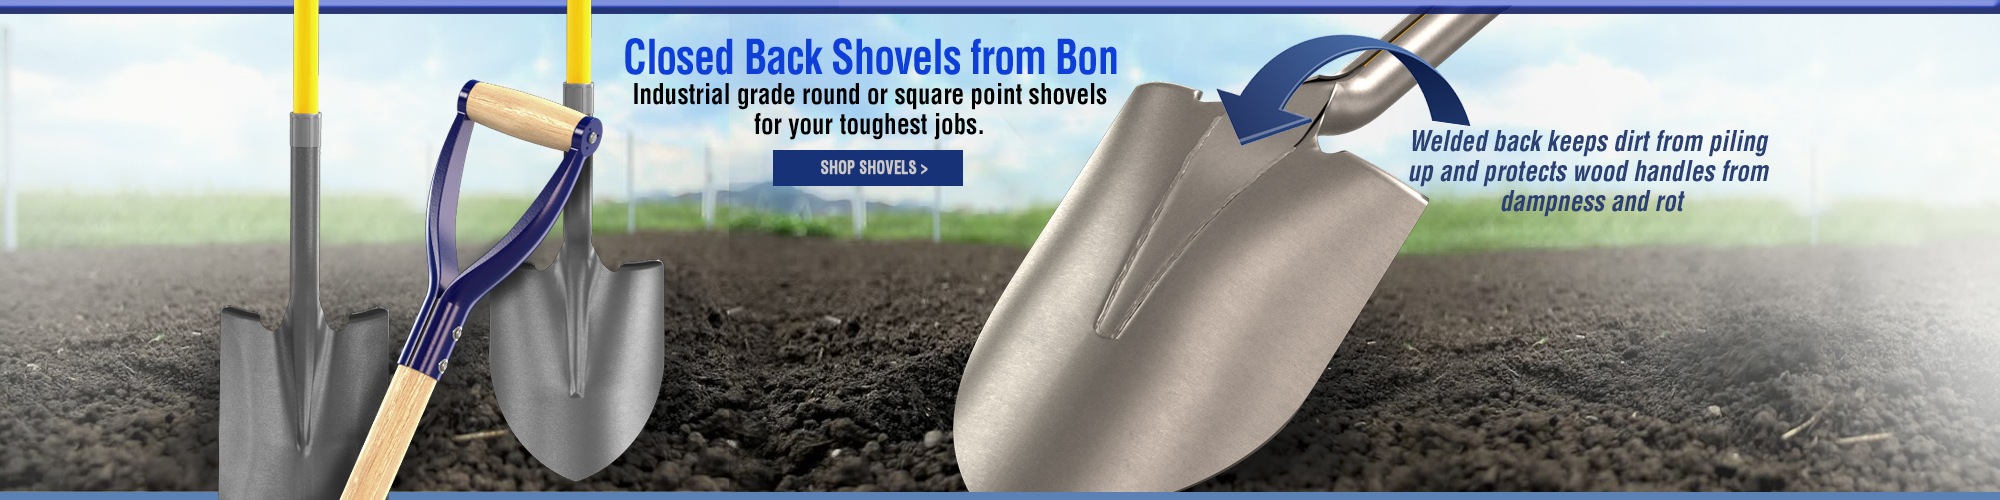 Shovels by Bon